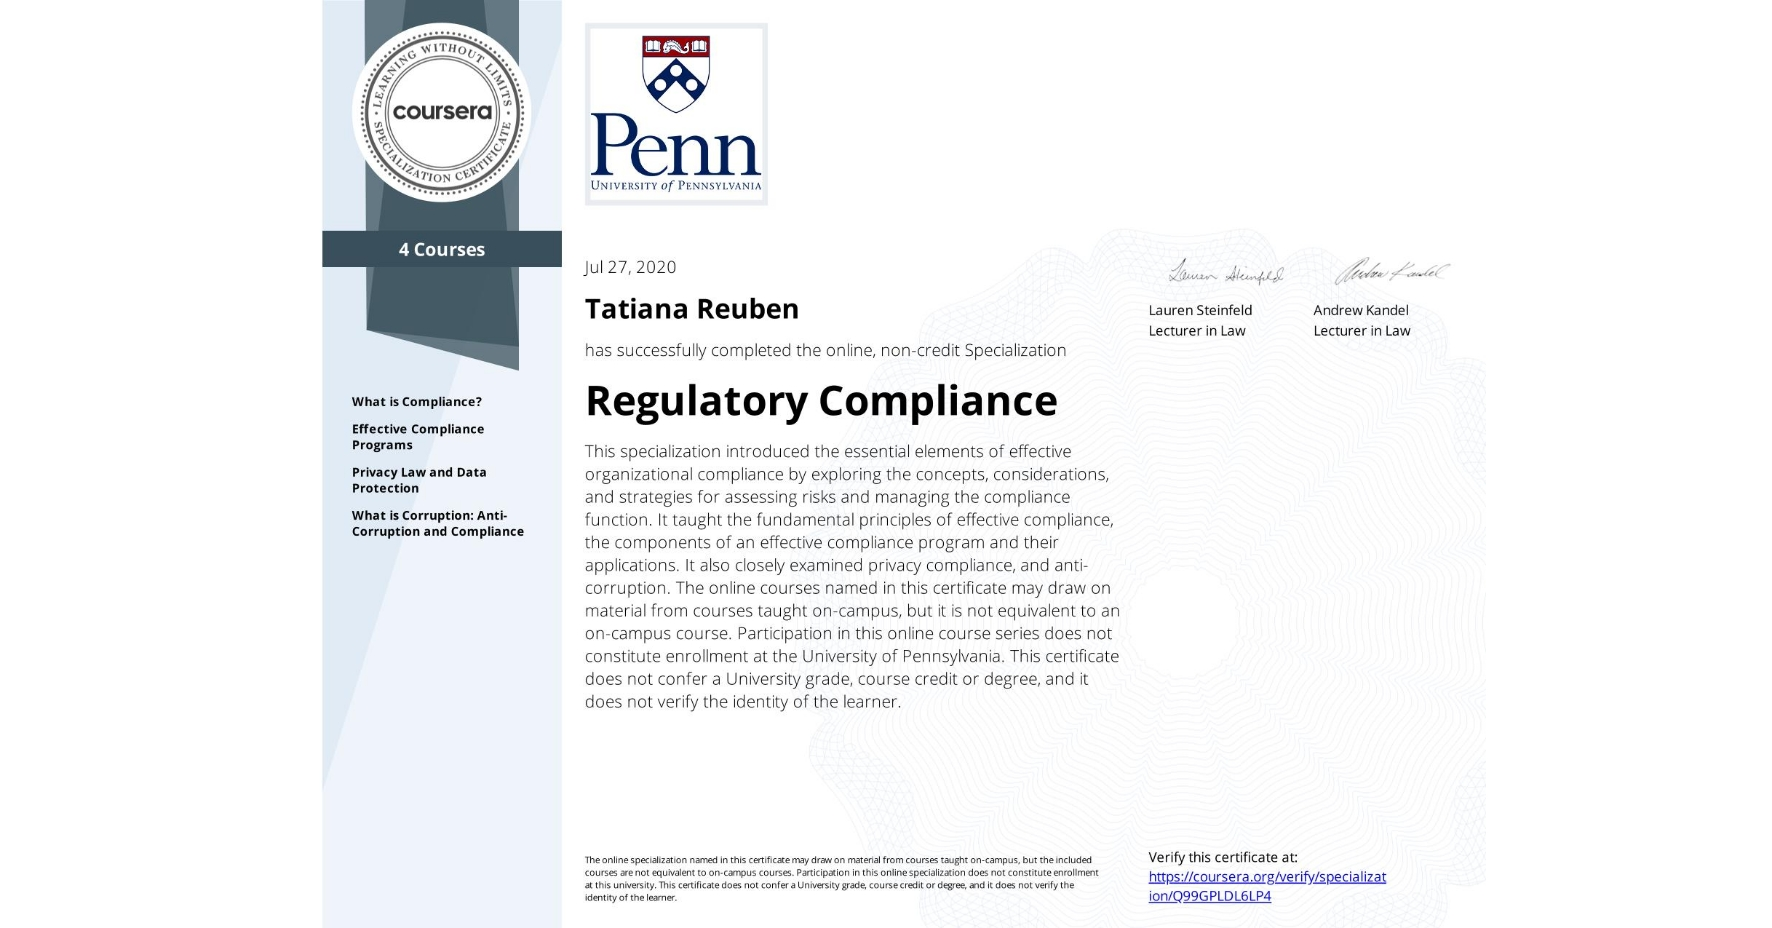 View certificate for Tatiana Reuben, Regulatory Compliance, offered through Coursera. This specialization introduced the essential elements of effective organizational compliance by exploring the concepts, considerations, and strategies for assessing risks and managing the compliance function. It taught the fundamental principles of effective compliance, the components of an effective compliance program and their applications. It also closely examined privacy compliance, and anti-corruption.   The online courses named in this certificate may draw on material from courses taught on-campus, but it is not equivalent to an on-campus course.  Participation in this online course series does not constitute enrollment at the University of Pennsylvania. This certificate does not confer a University grade, course credit or degree, and it does not verify the identity of the learner.